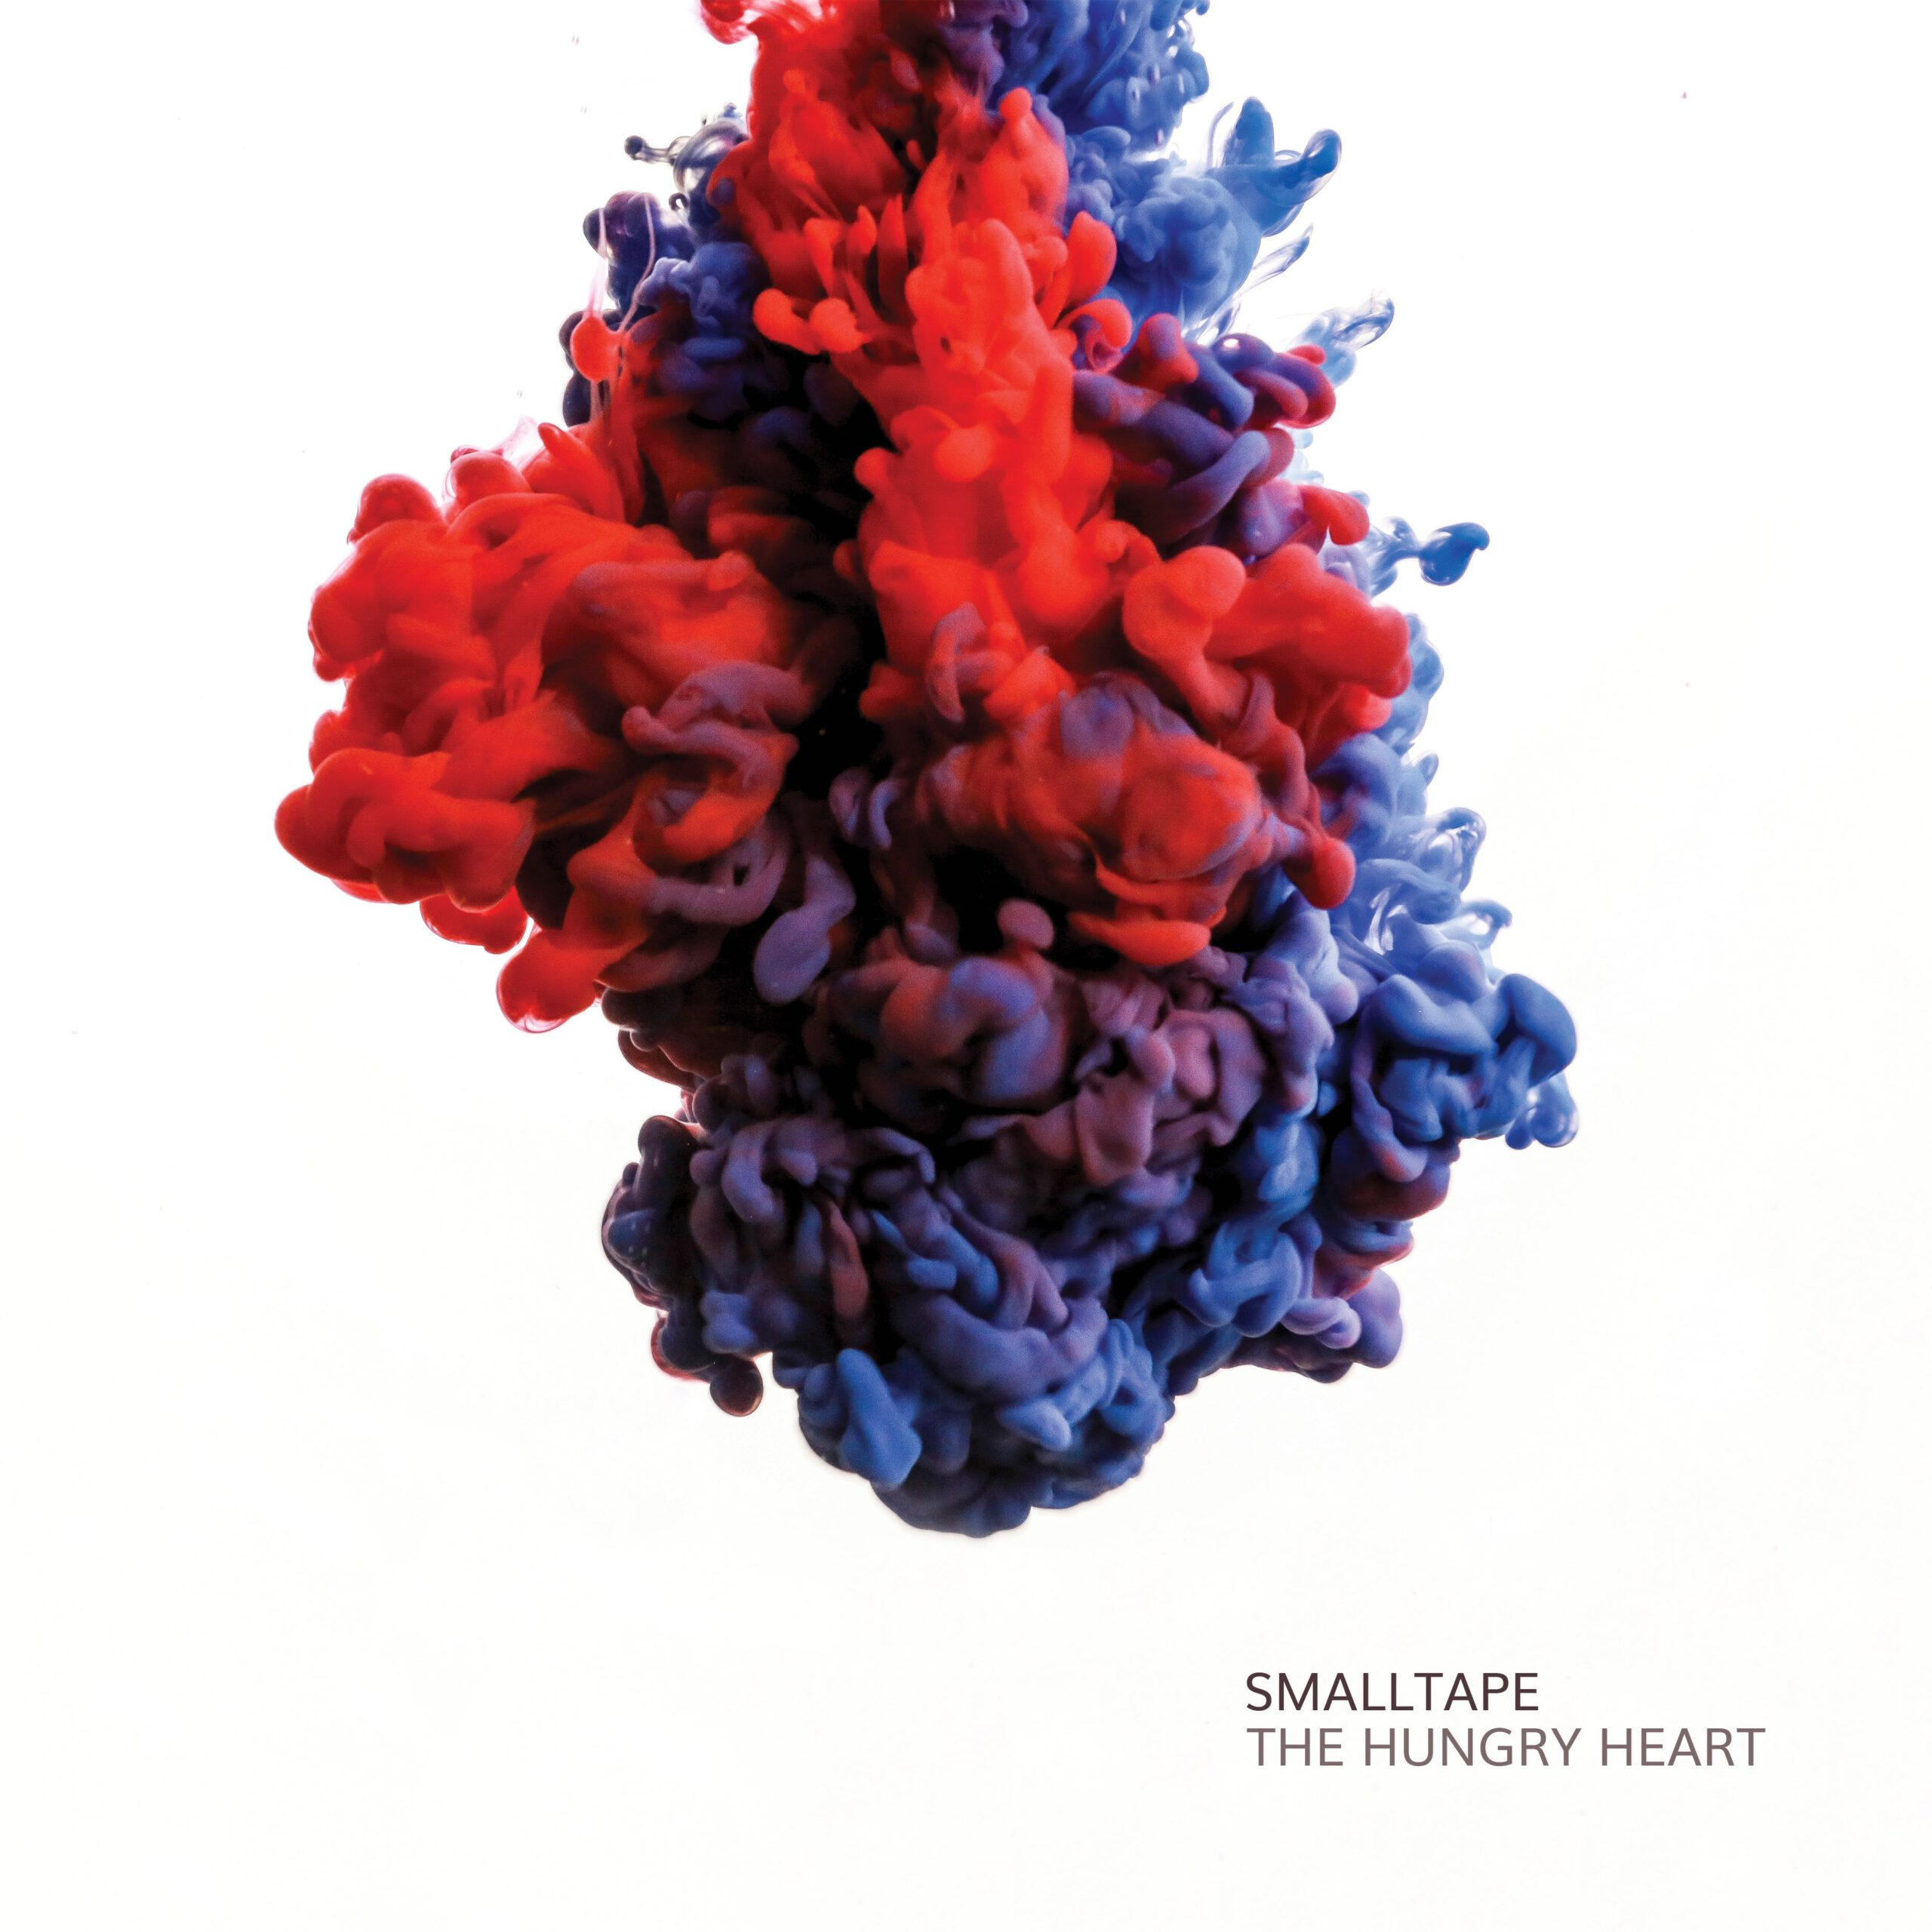 smalltape – The Hungry Heart (180g 2LP)